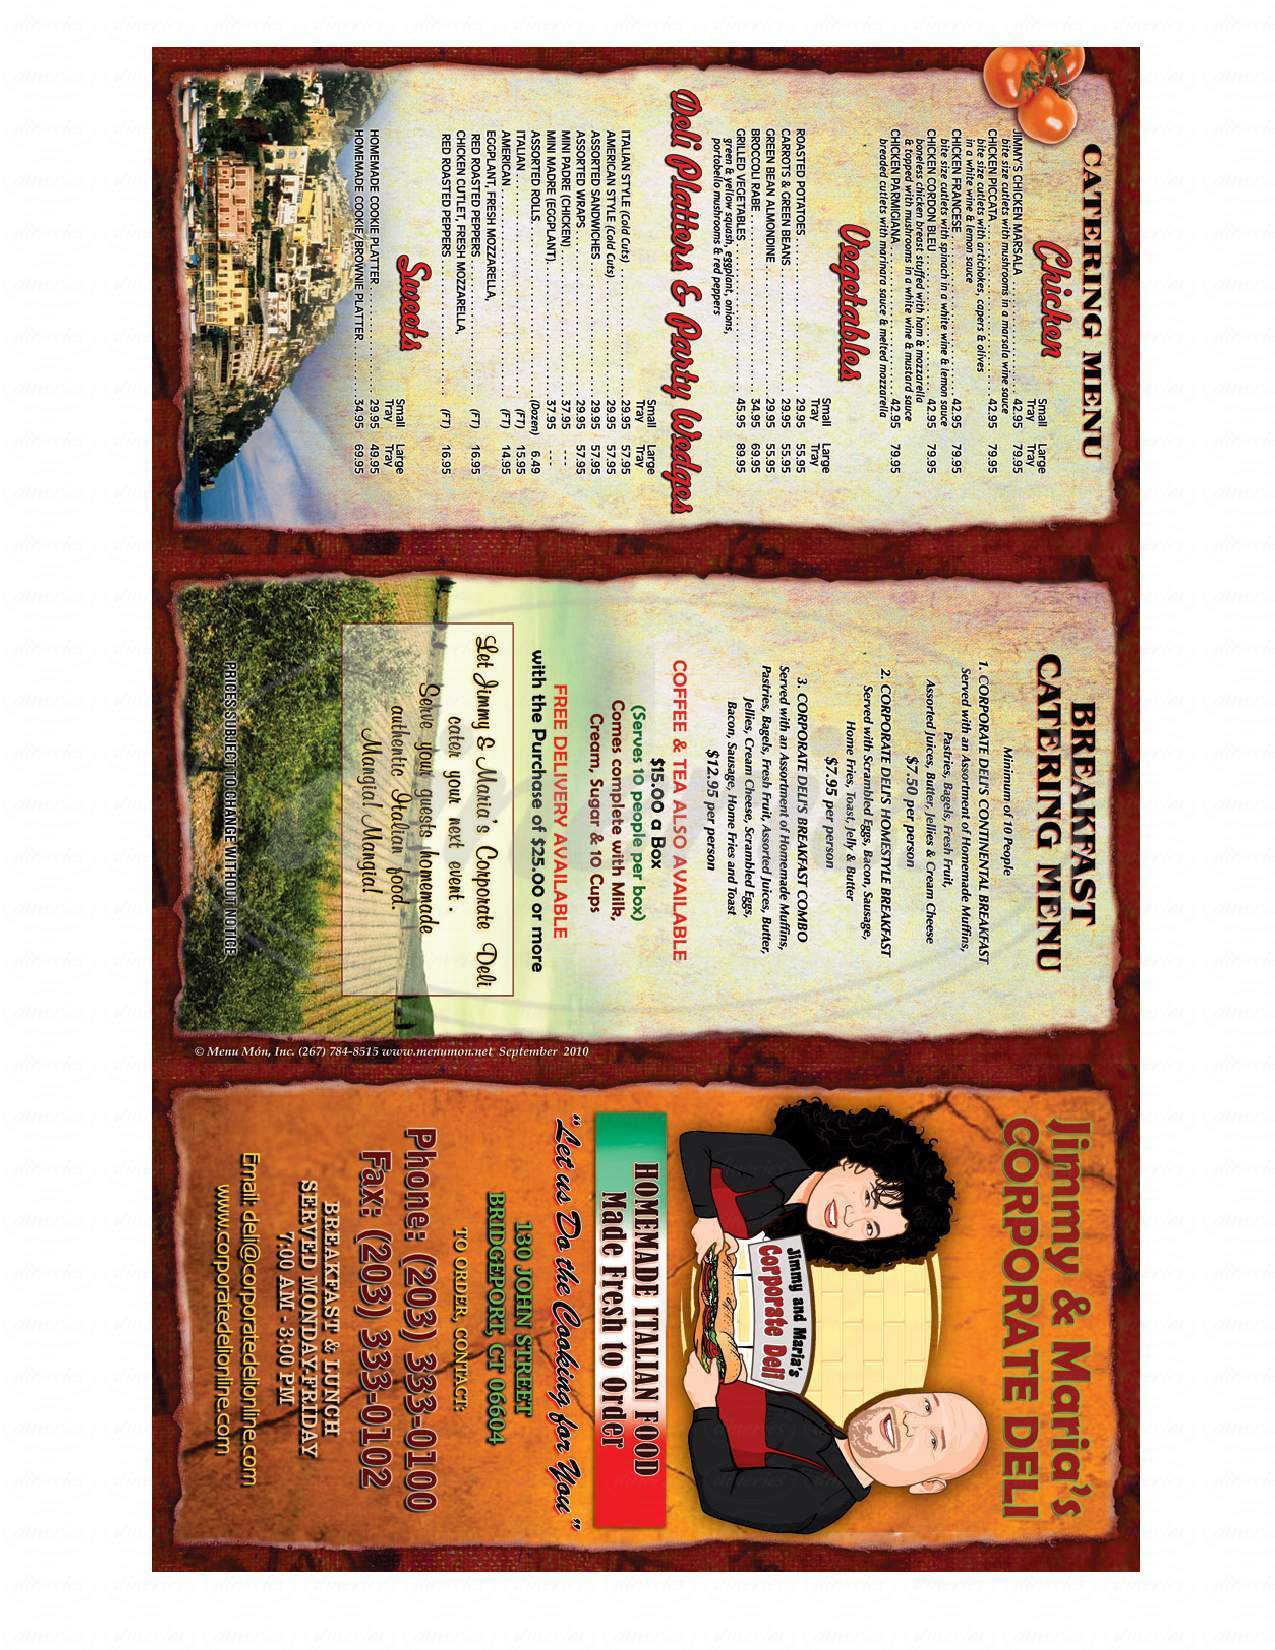 menu for Corporate Deli & Grille